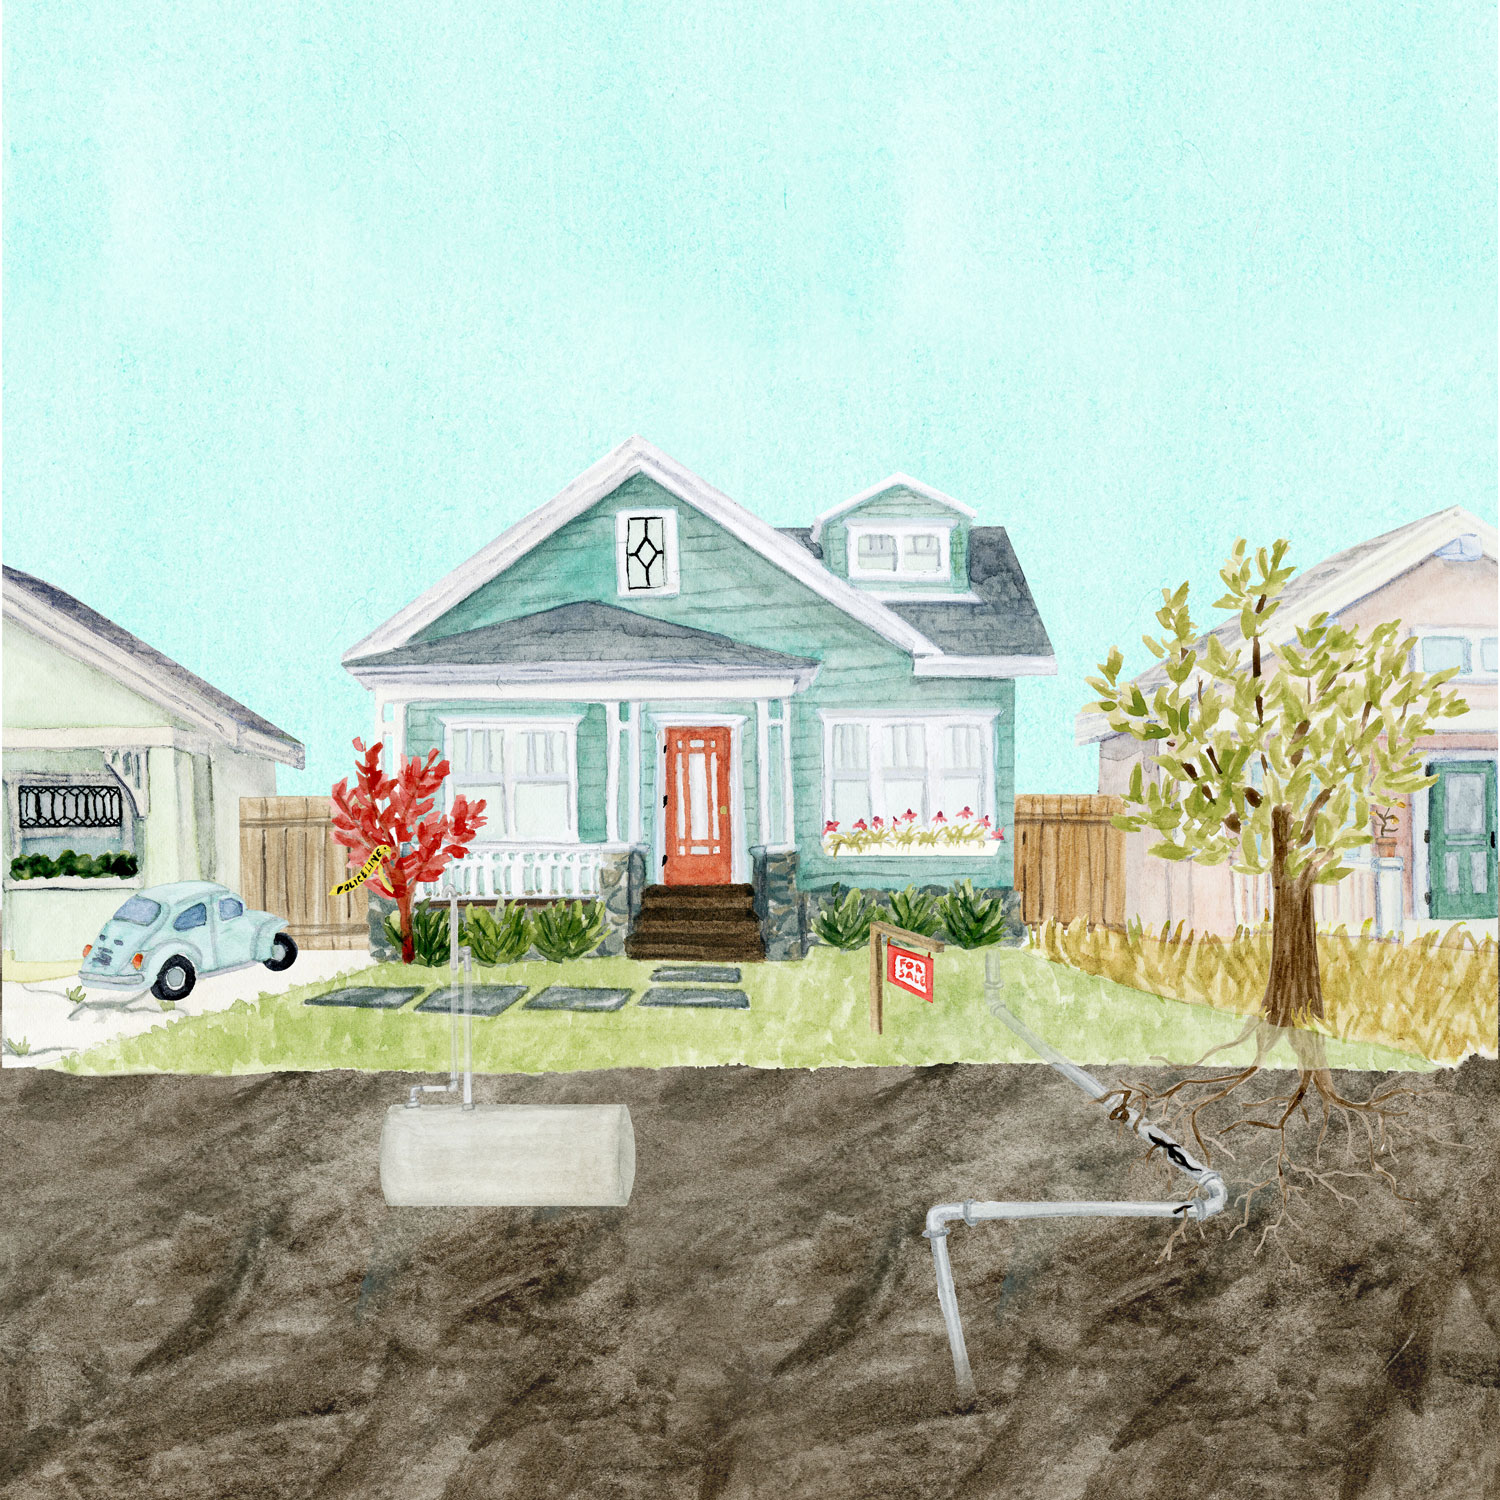 New York Times Real Estate Section illustration